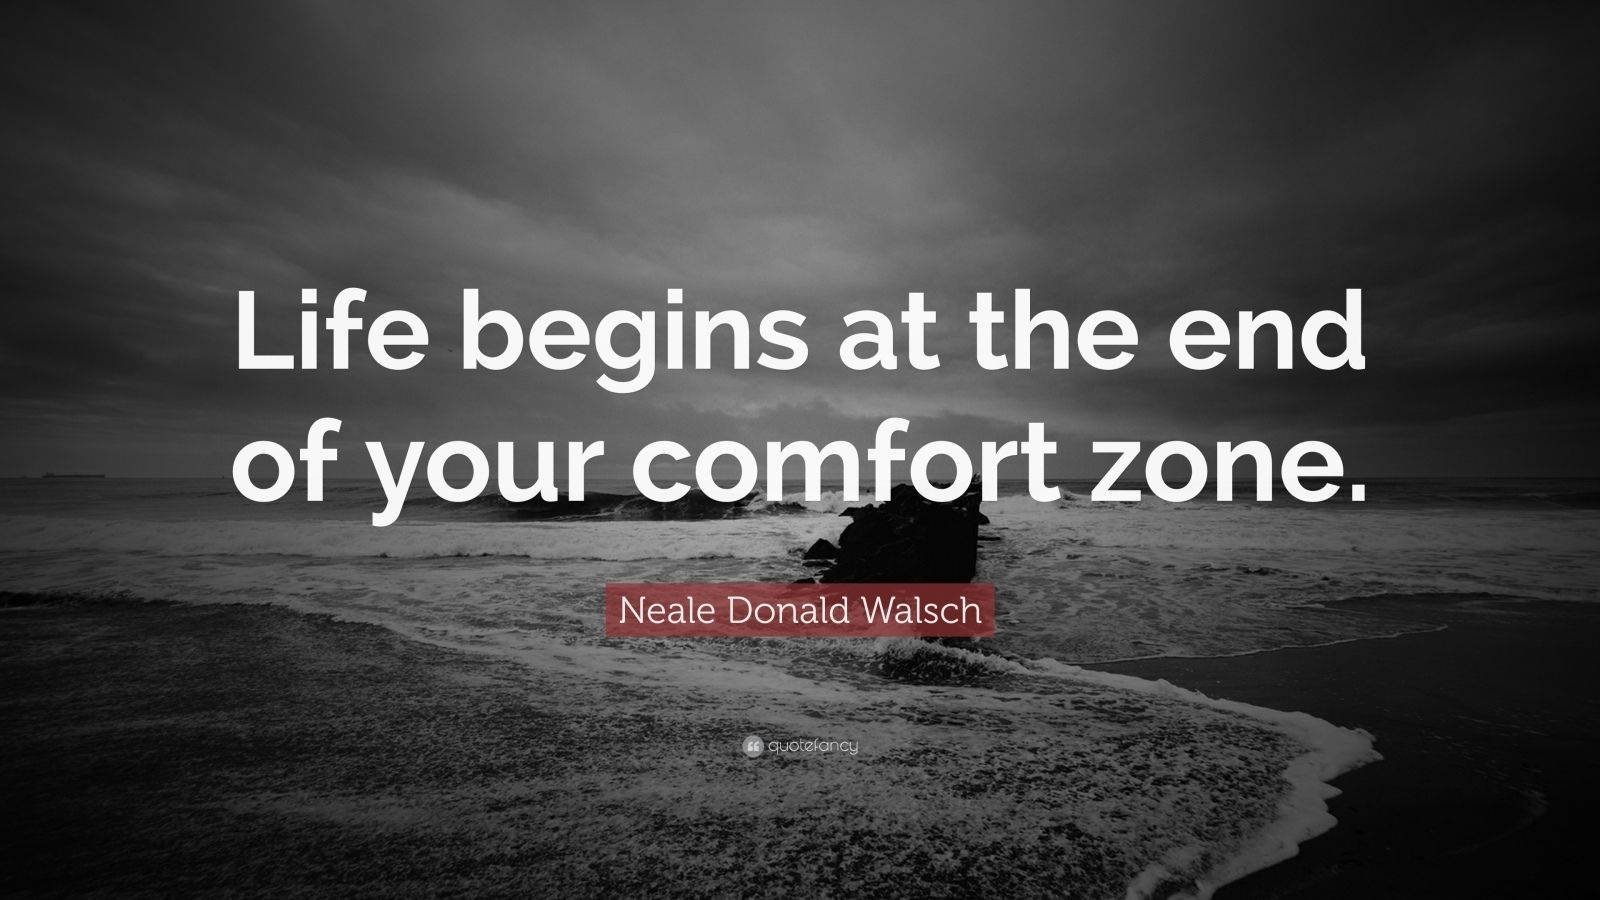 End Of Life Quotes Inspirational Neale Donald Walsch Quotes 100 Wallpapers  Quotefancy